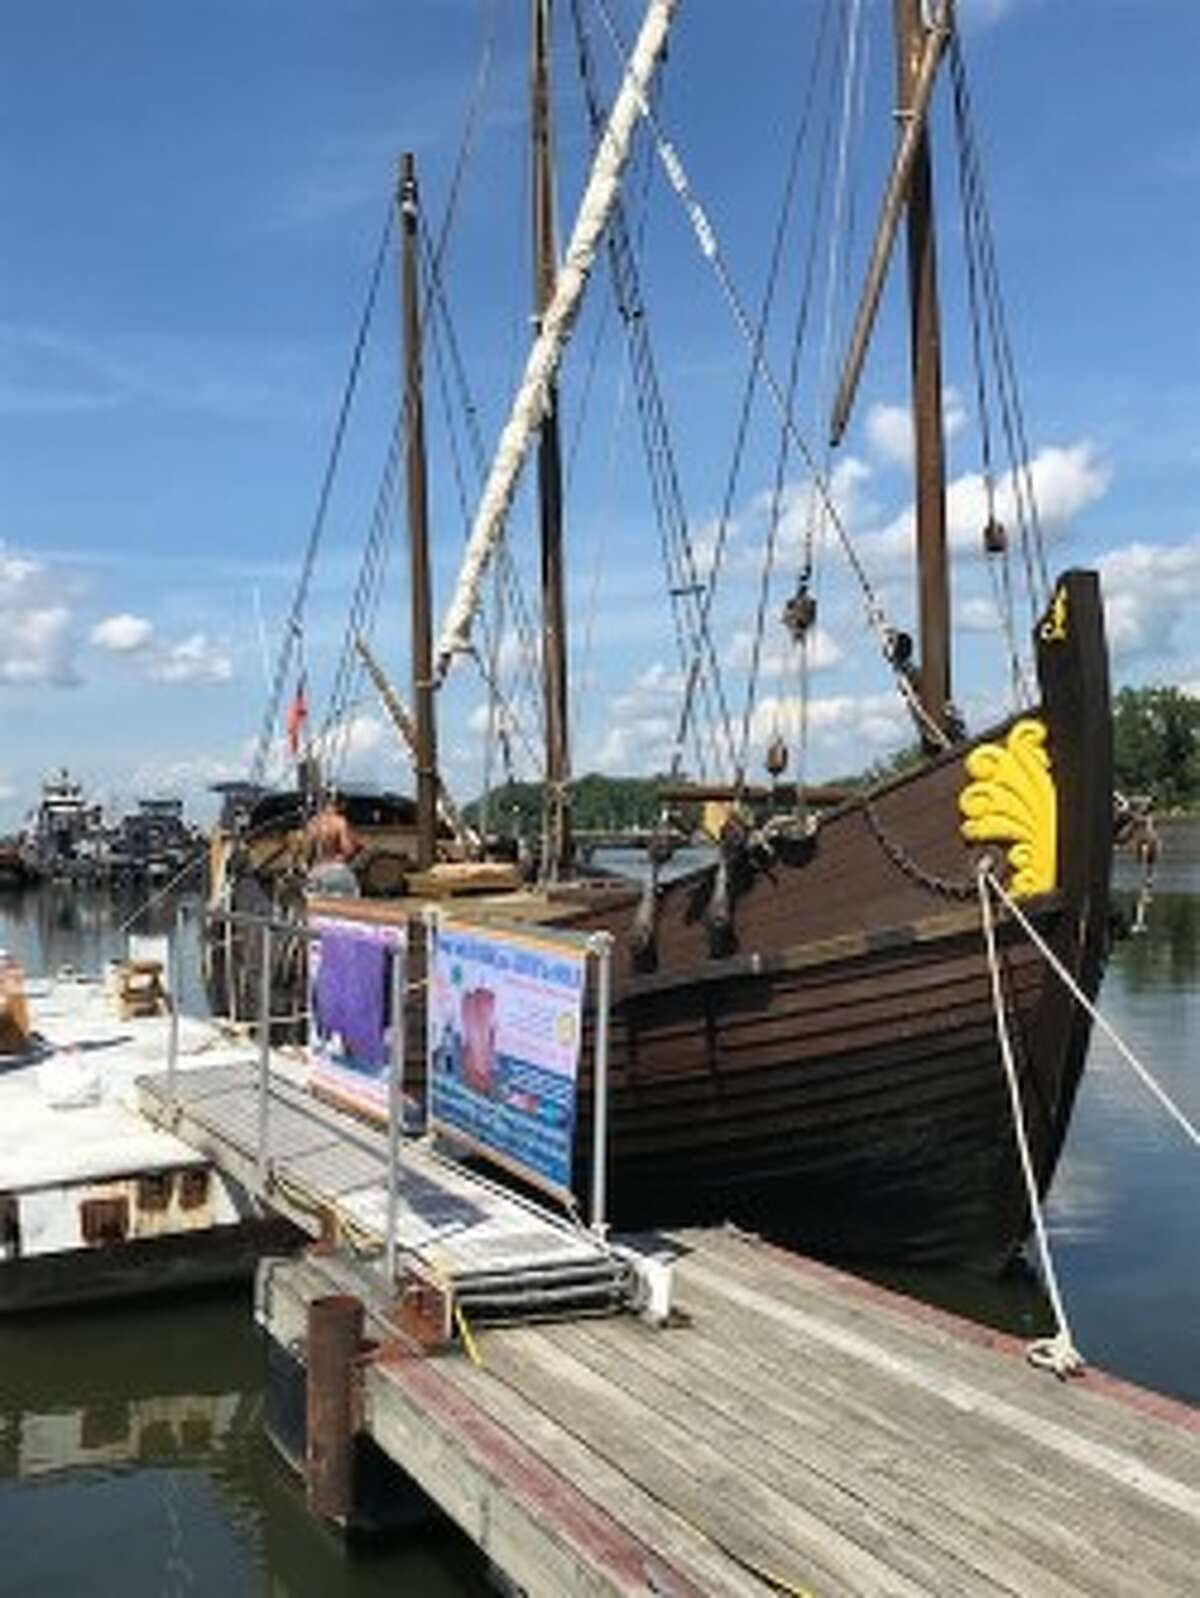 The 18th-century Russian replica cargo ship Pilgrim is docked in Albany through July 30 and open to free public tours with registration and a ticket. (Paul Grondahl / Times Union)